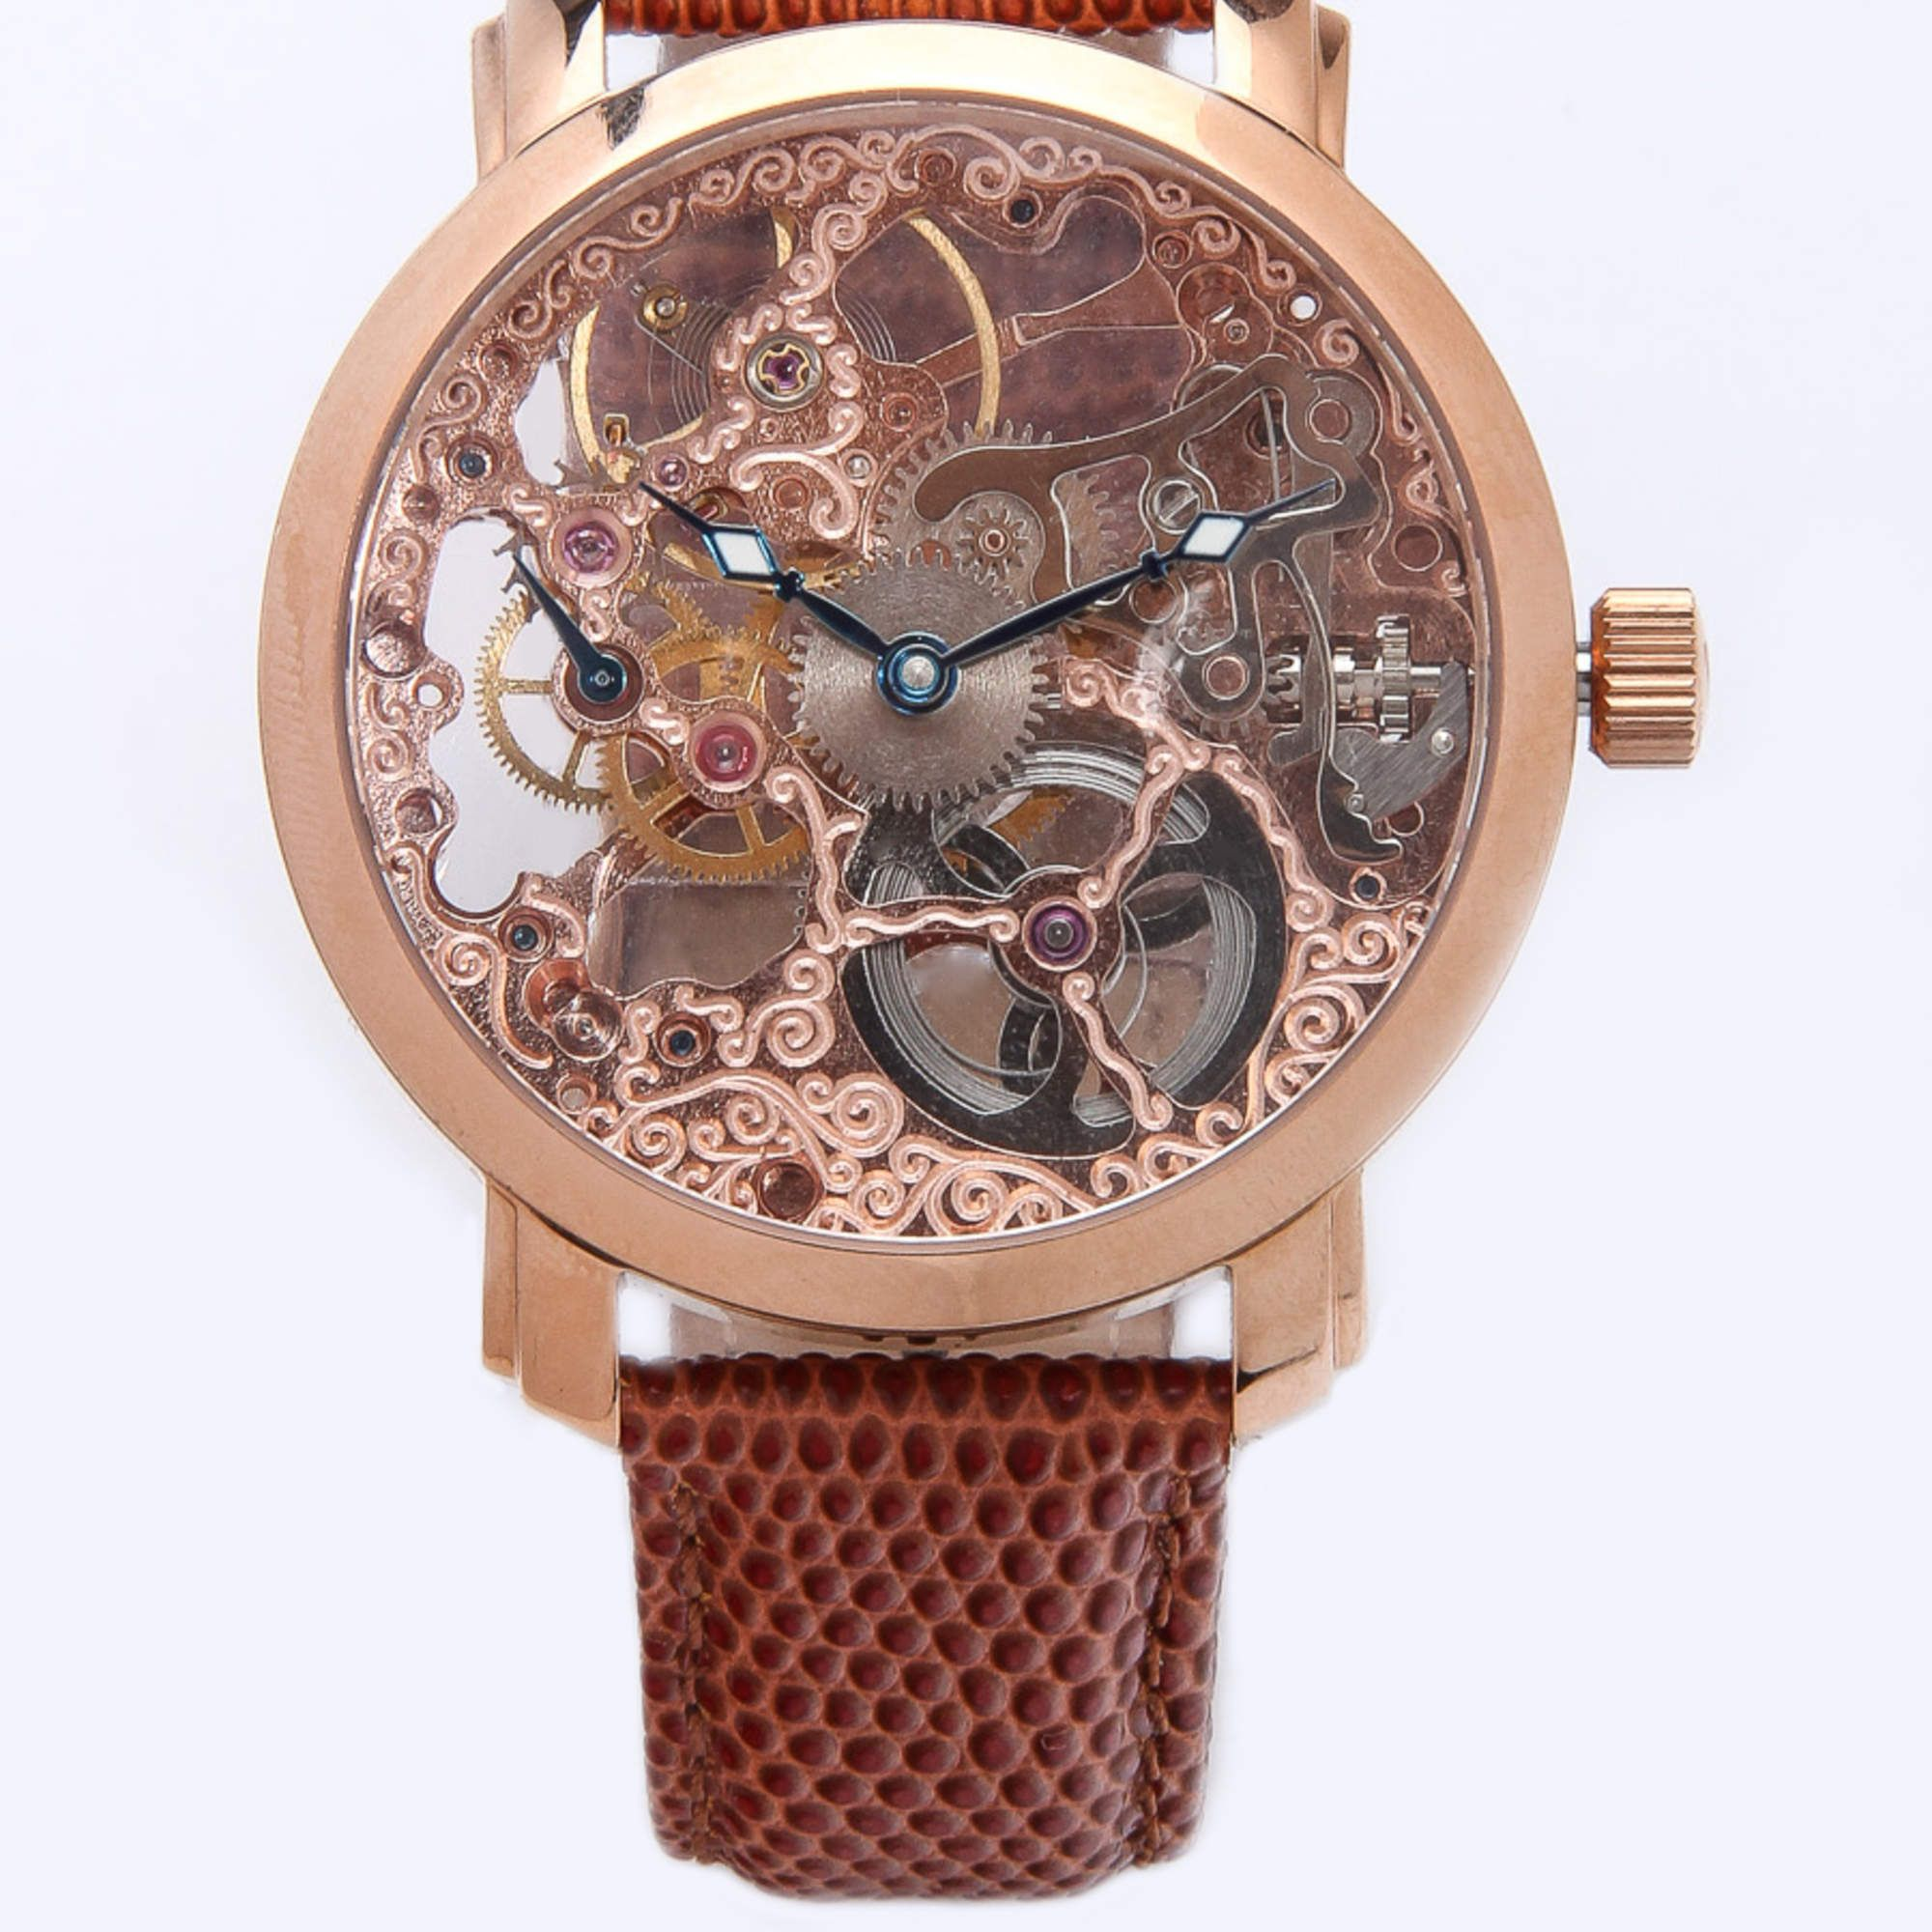 davinci years jubilee en watches automatic collections collection da vinci edition watch